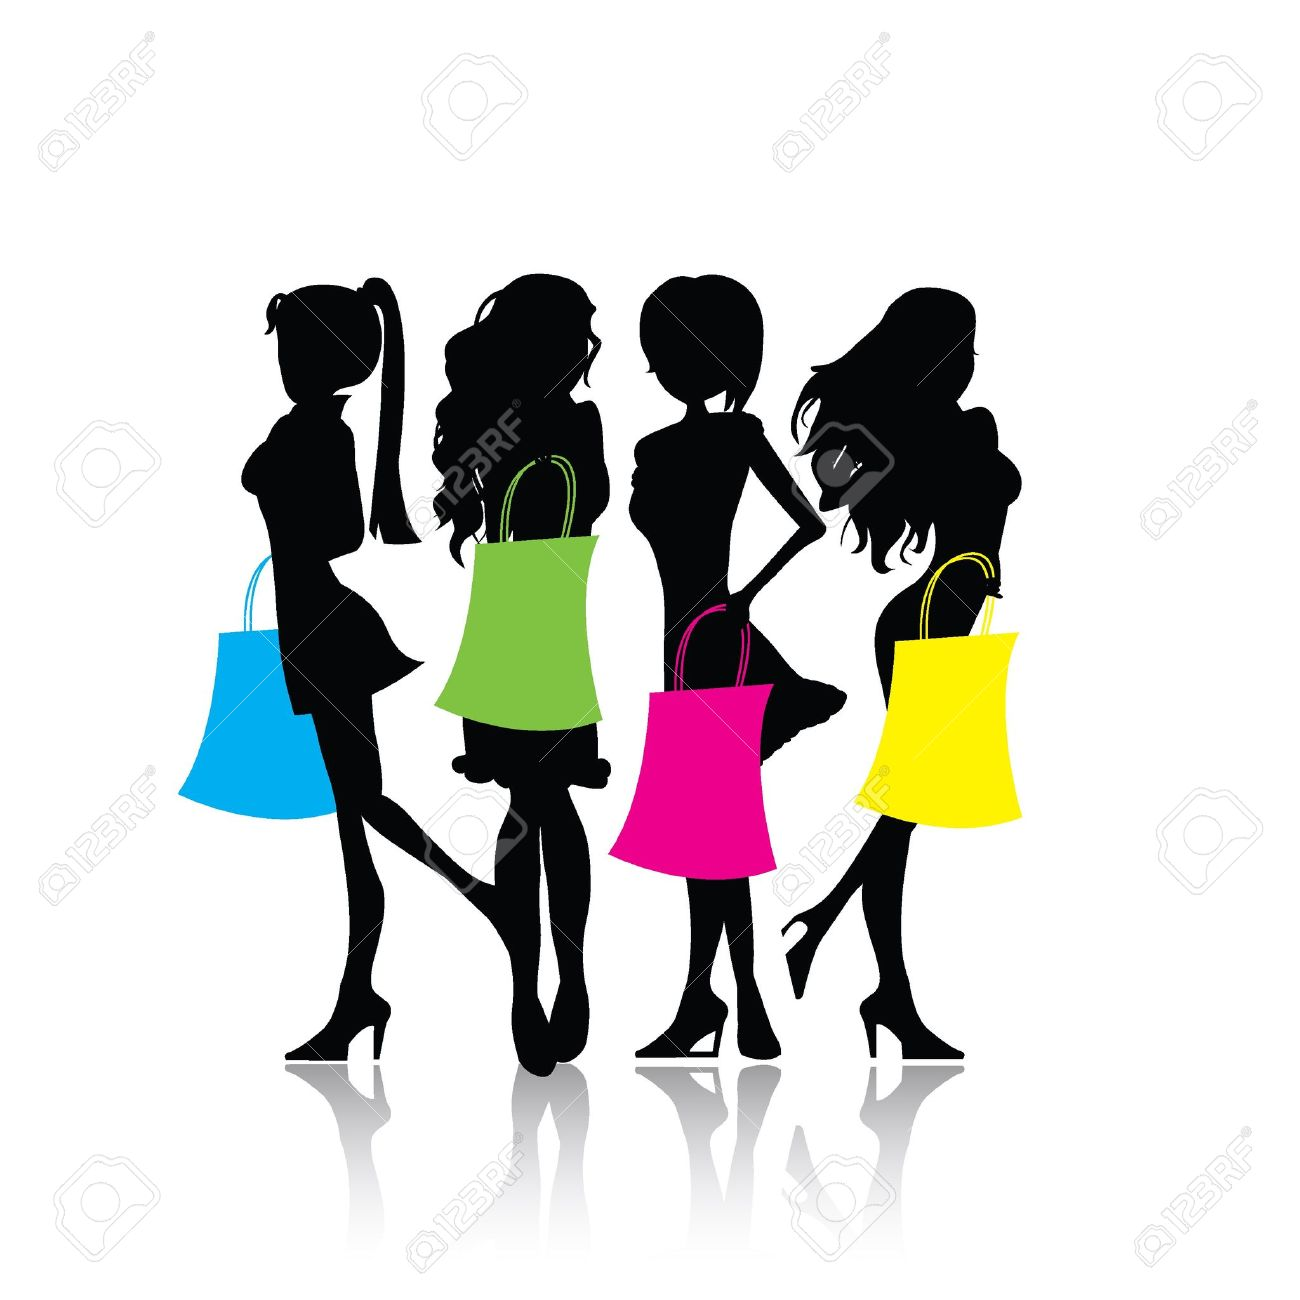 four isolated silhouette shopping girls with shopping bags Stock Vector - 20171002